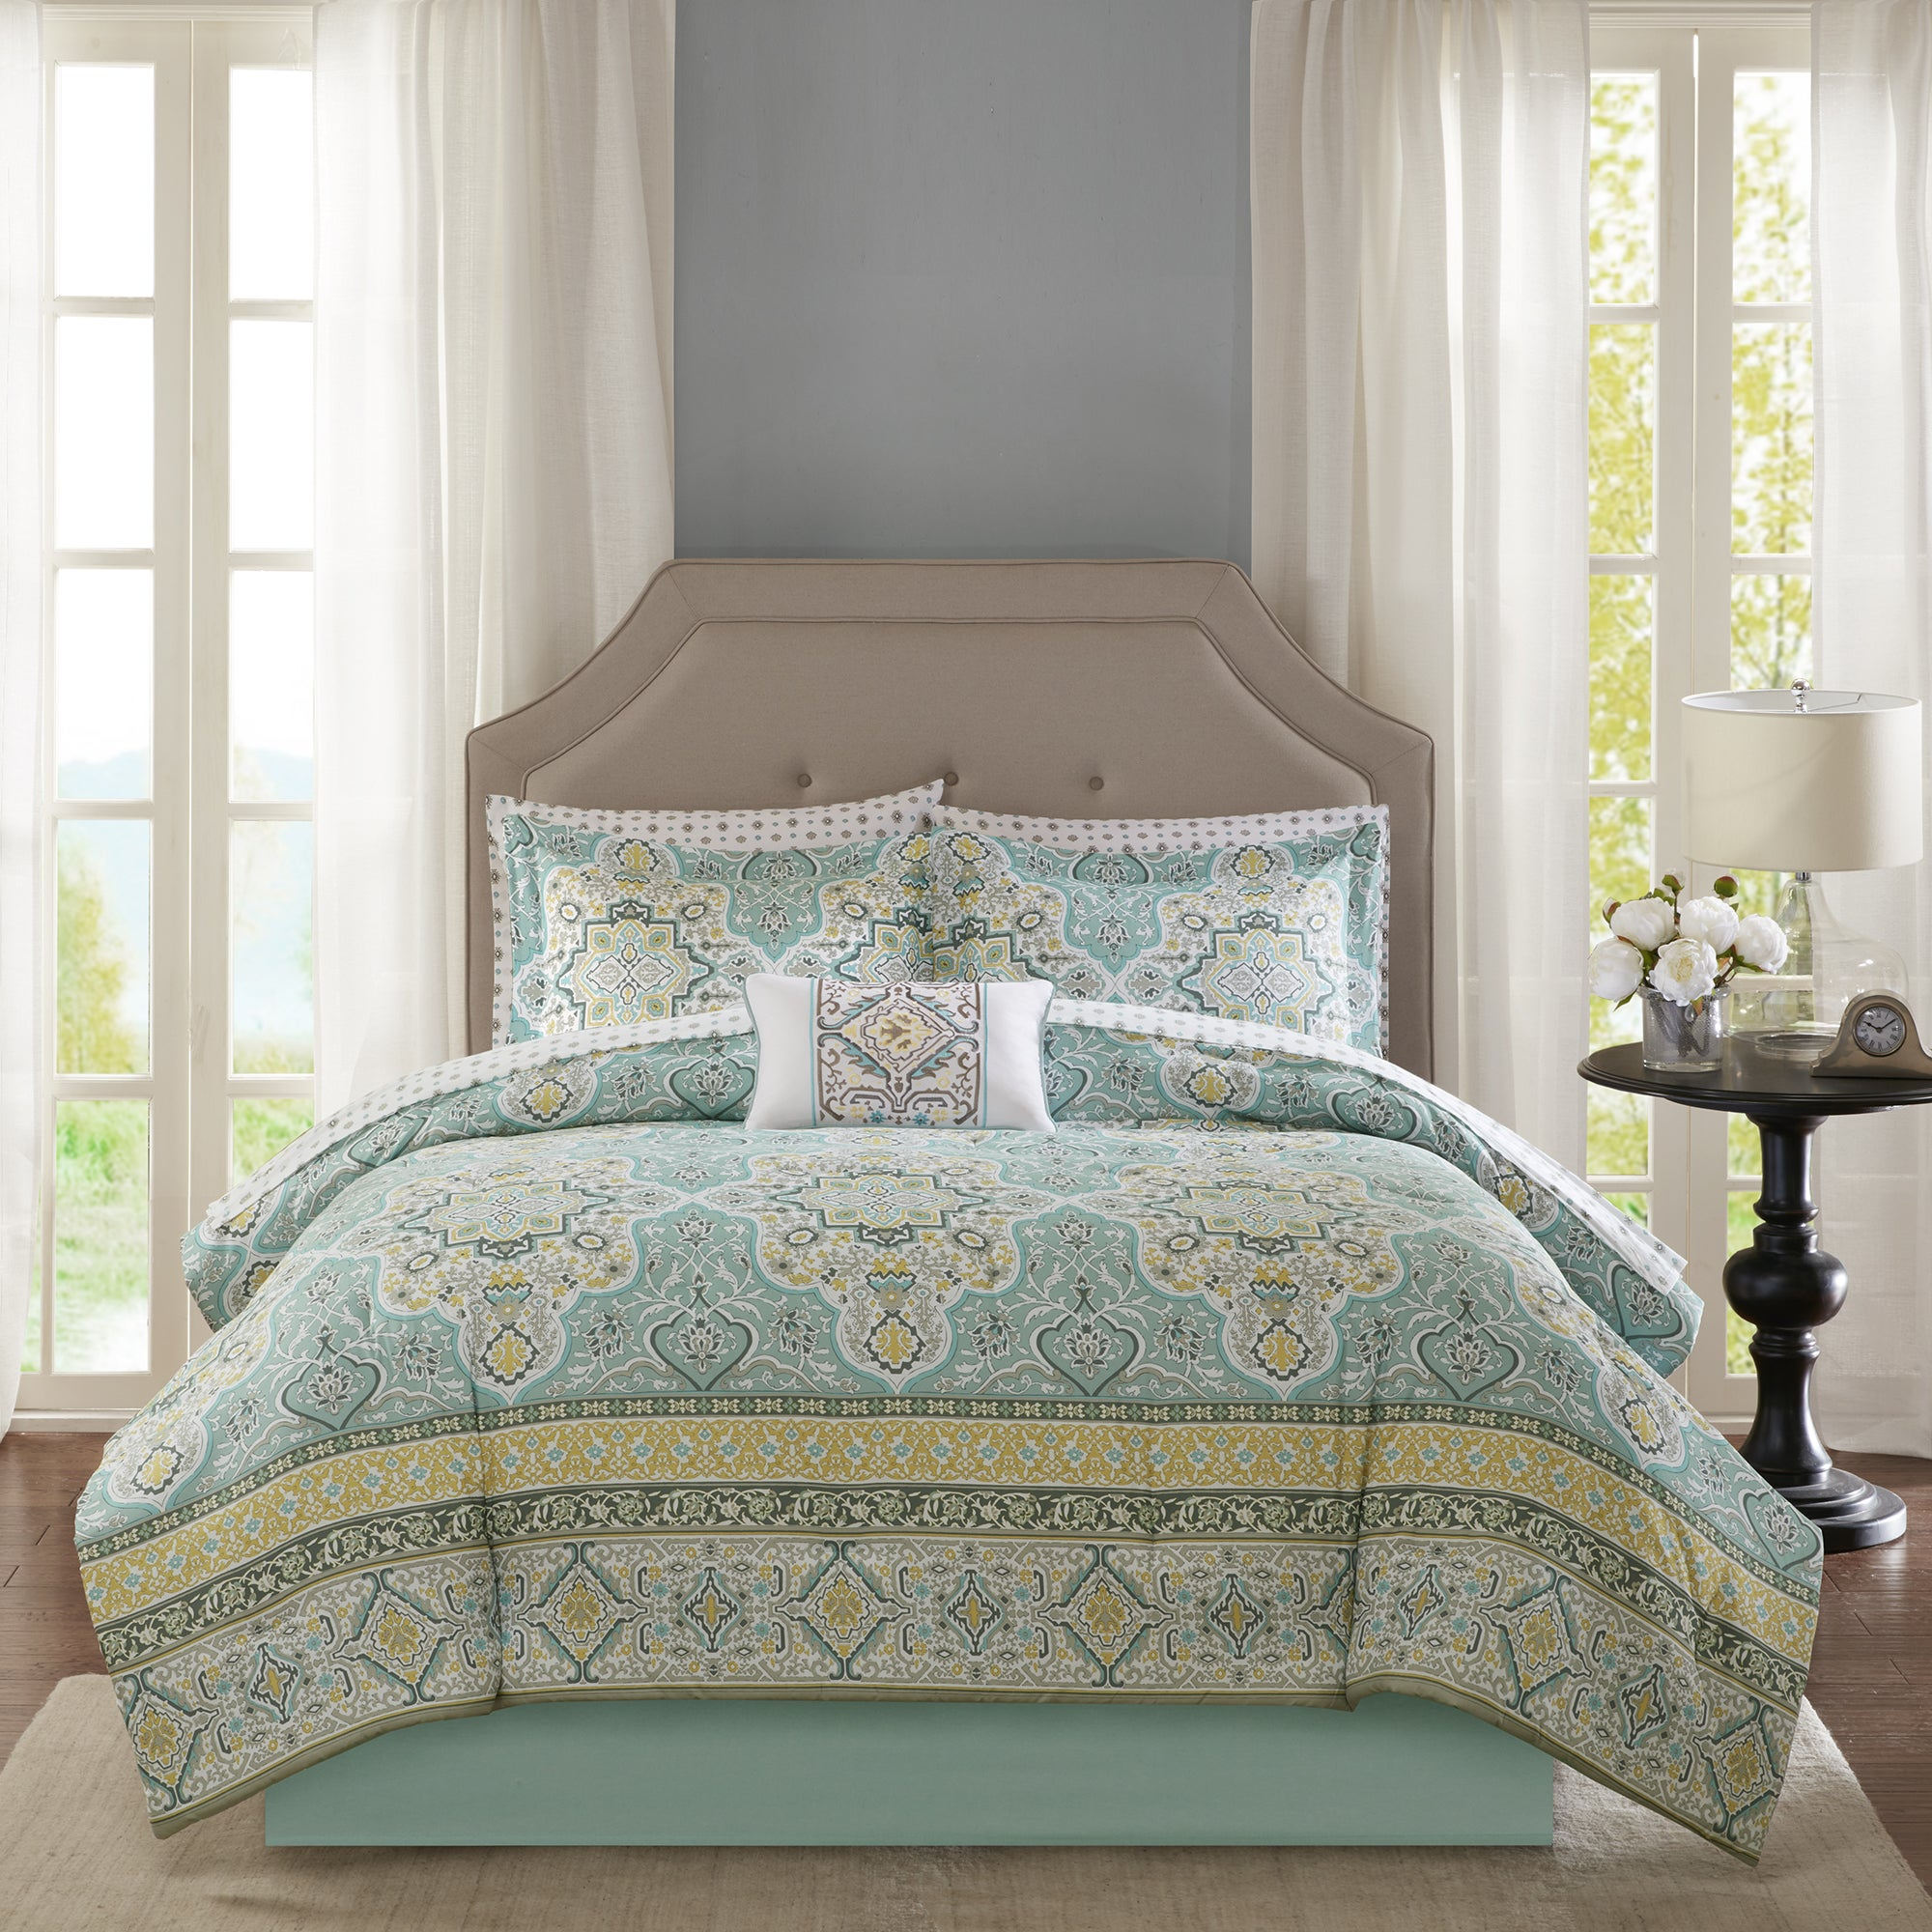 eternel overstock bedding product com set l bath on lamour bed shipping amour comforter lucia free piece